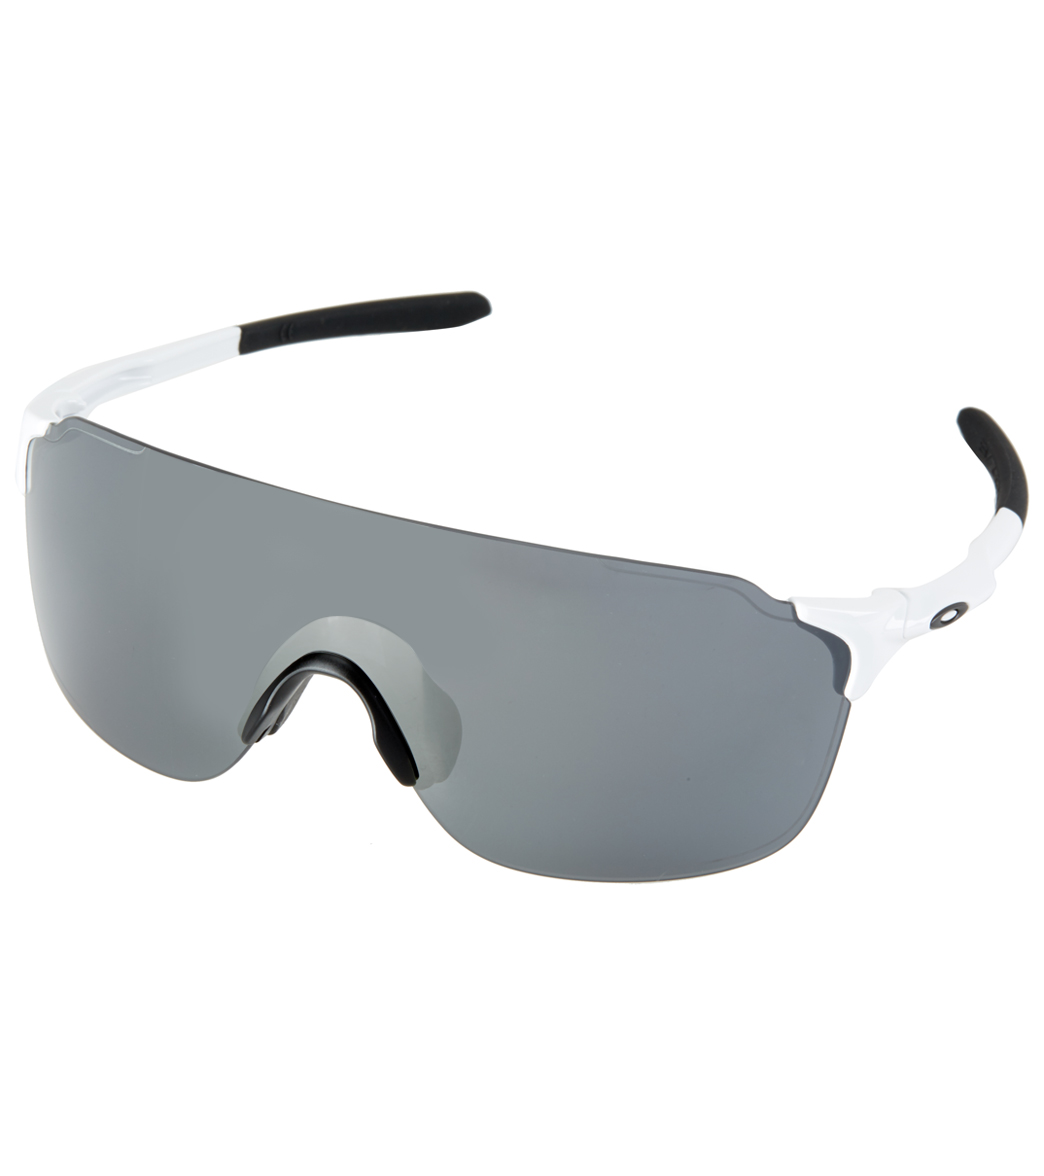 1cb0dd658cbe8 Oakley Men s EVzero Stride Iridium Lens Sunglasses at SwimOutlet.com - Free  Shipping